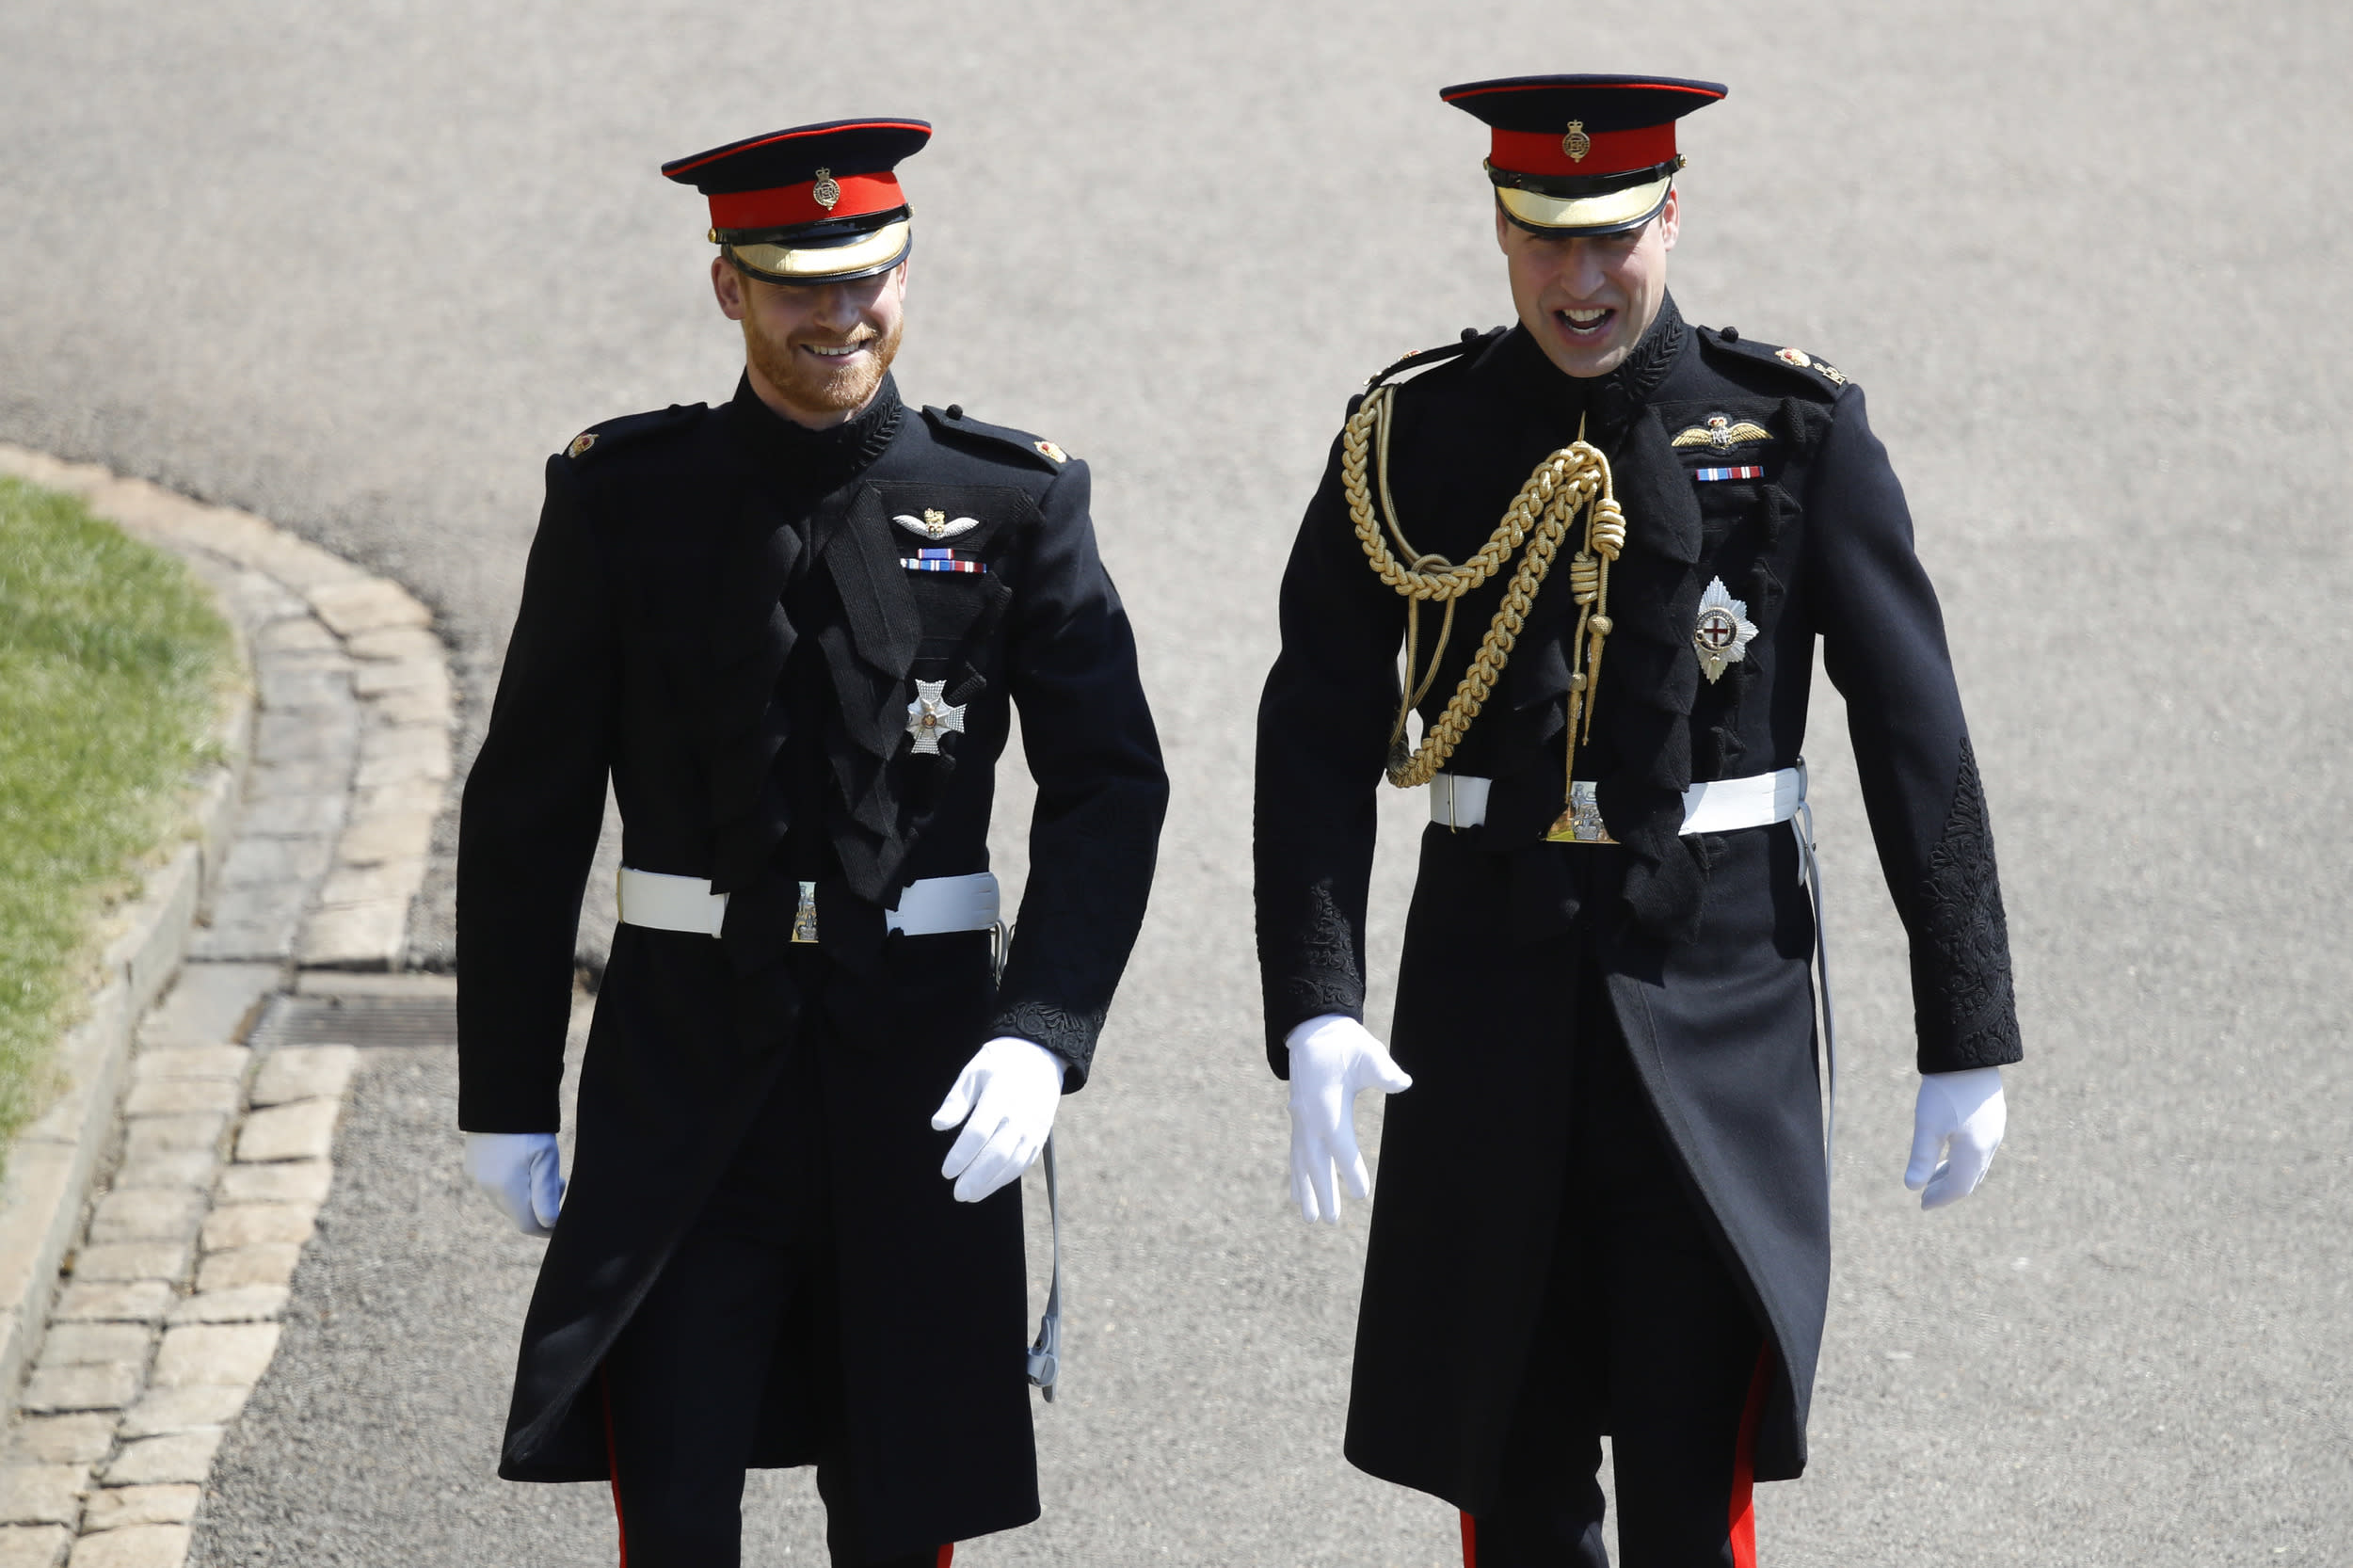 <p>Prince Harry, arrives with his best man Prince William, Duke of Cambridge for the wedding ceremony of Prince Harry and US actress Meghan Markle at St George's Chapel, Windsor Castle on May 19, 2018 in Windsor, England.</p>  <p>(Photo by Odd Anderson - WPA Pool/Getty Images)</p>